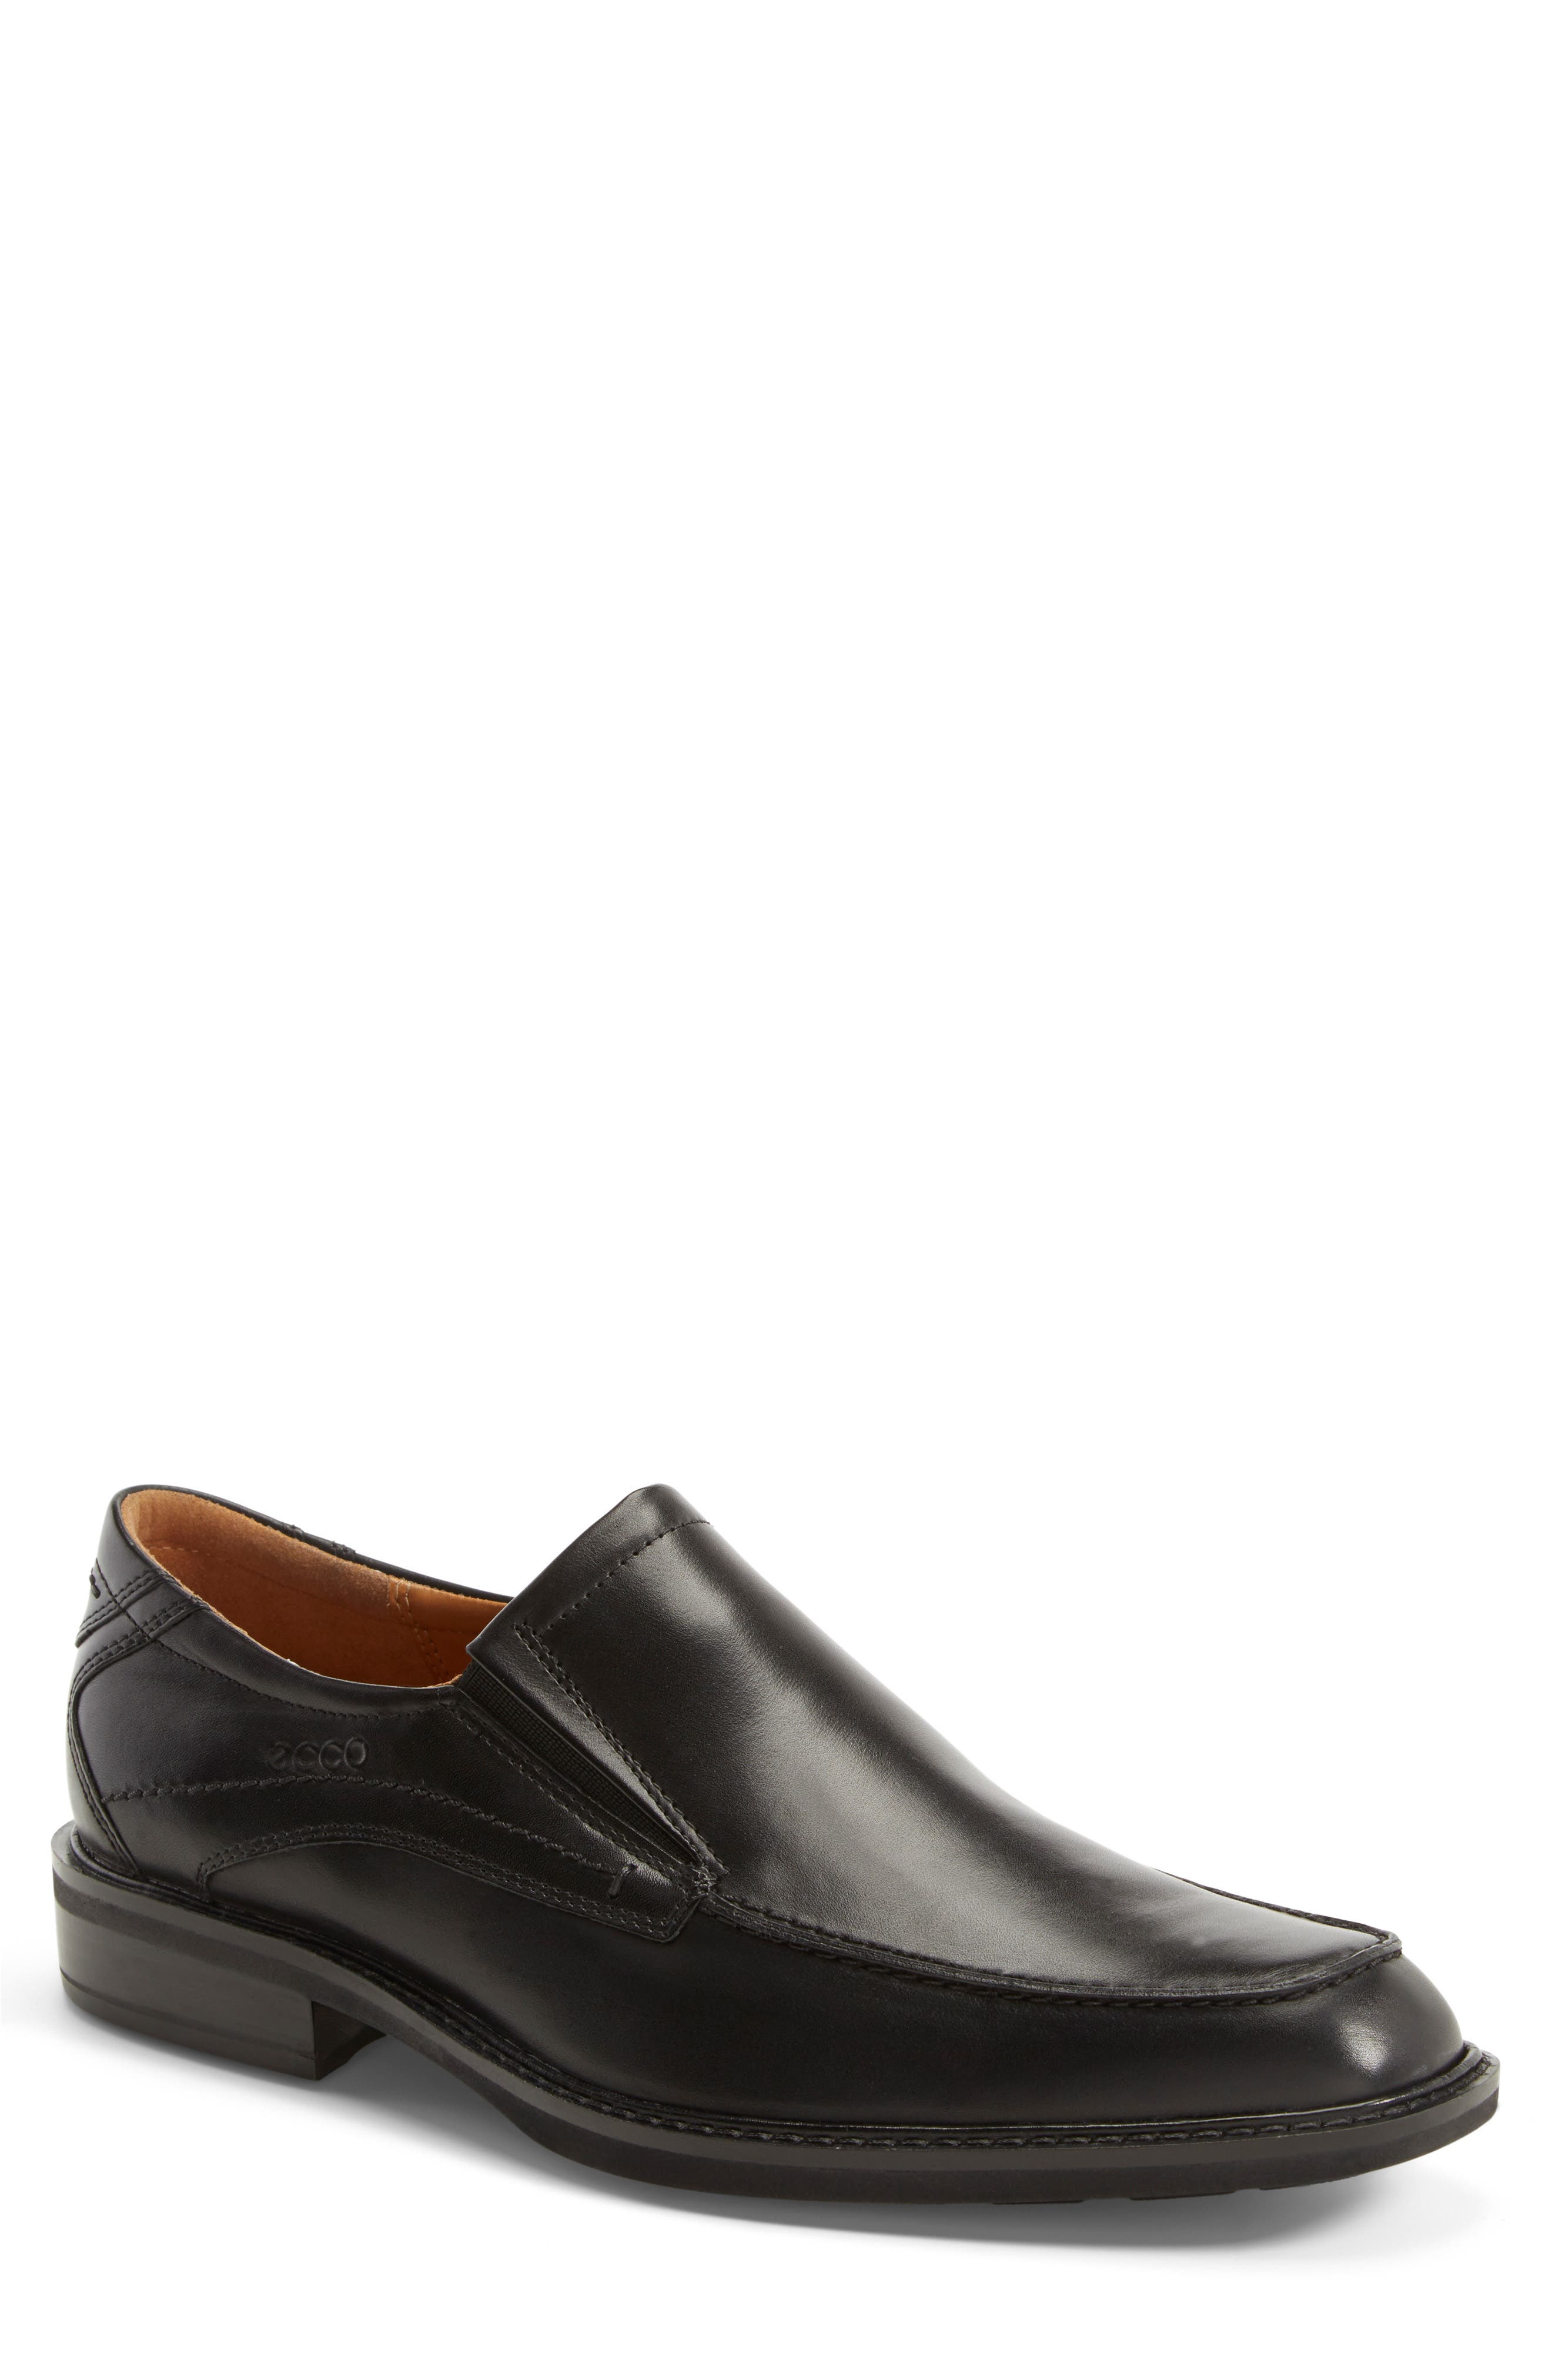 'Windsor' Slip-On,                             Main thumbnail 1, color,                             BLACK/BLACK LEATHER